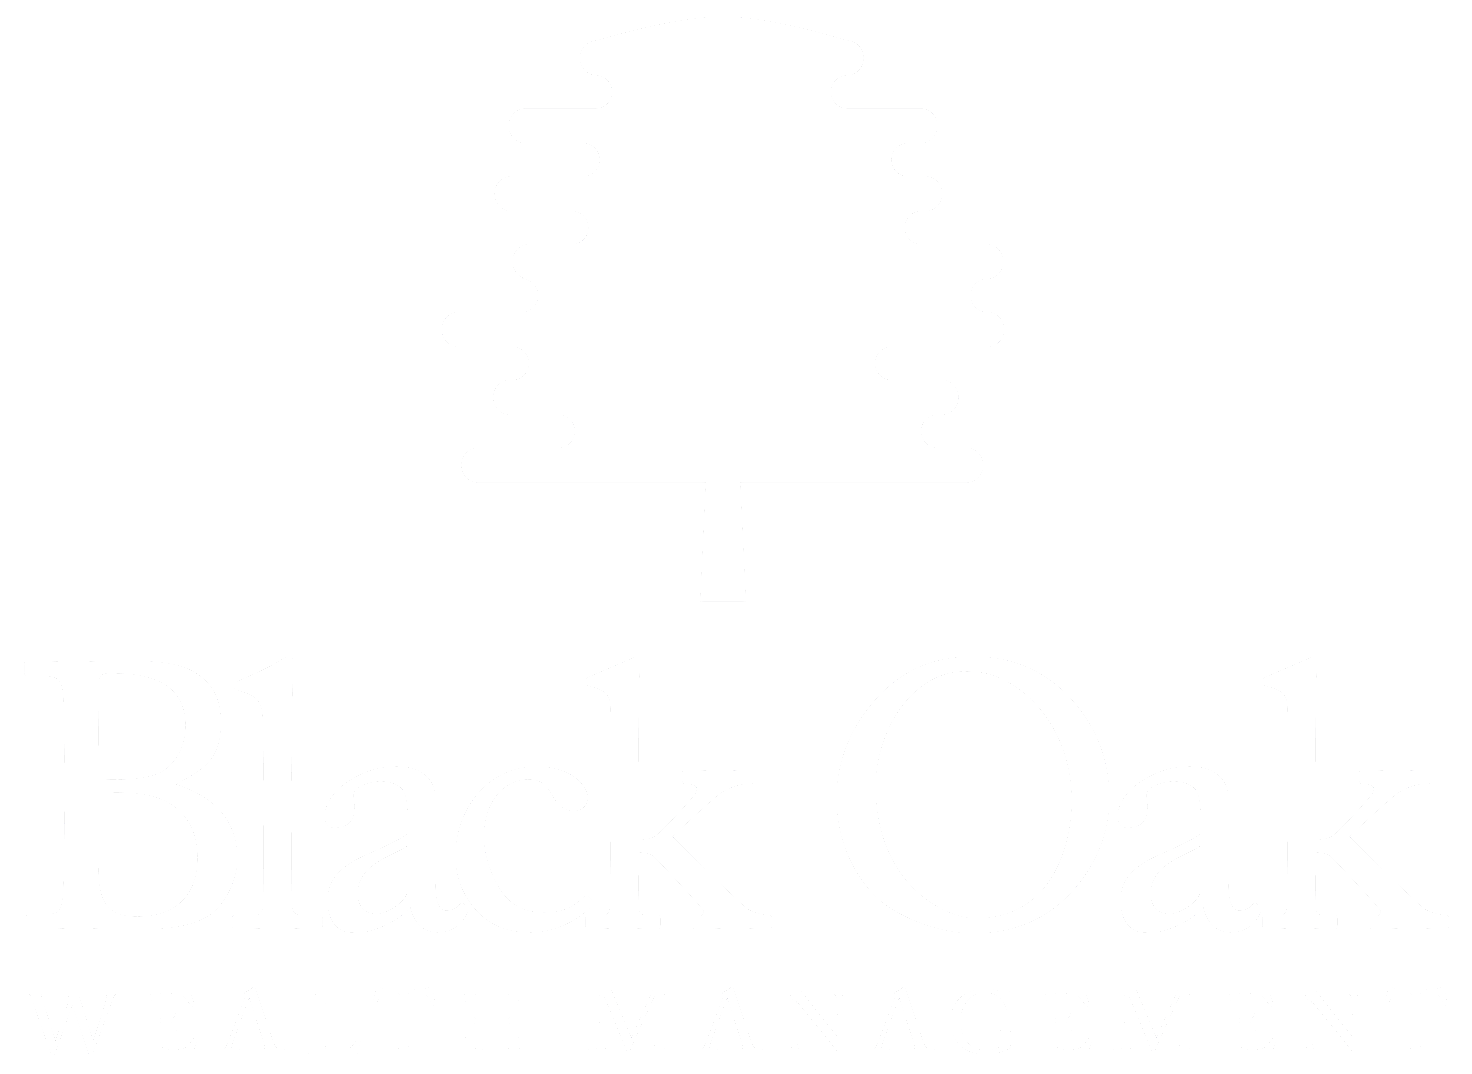 Black Oak Wealth Management - Financial Advisor - Greensboro, NC / Winston-Salem, NC